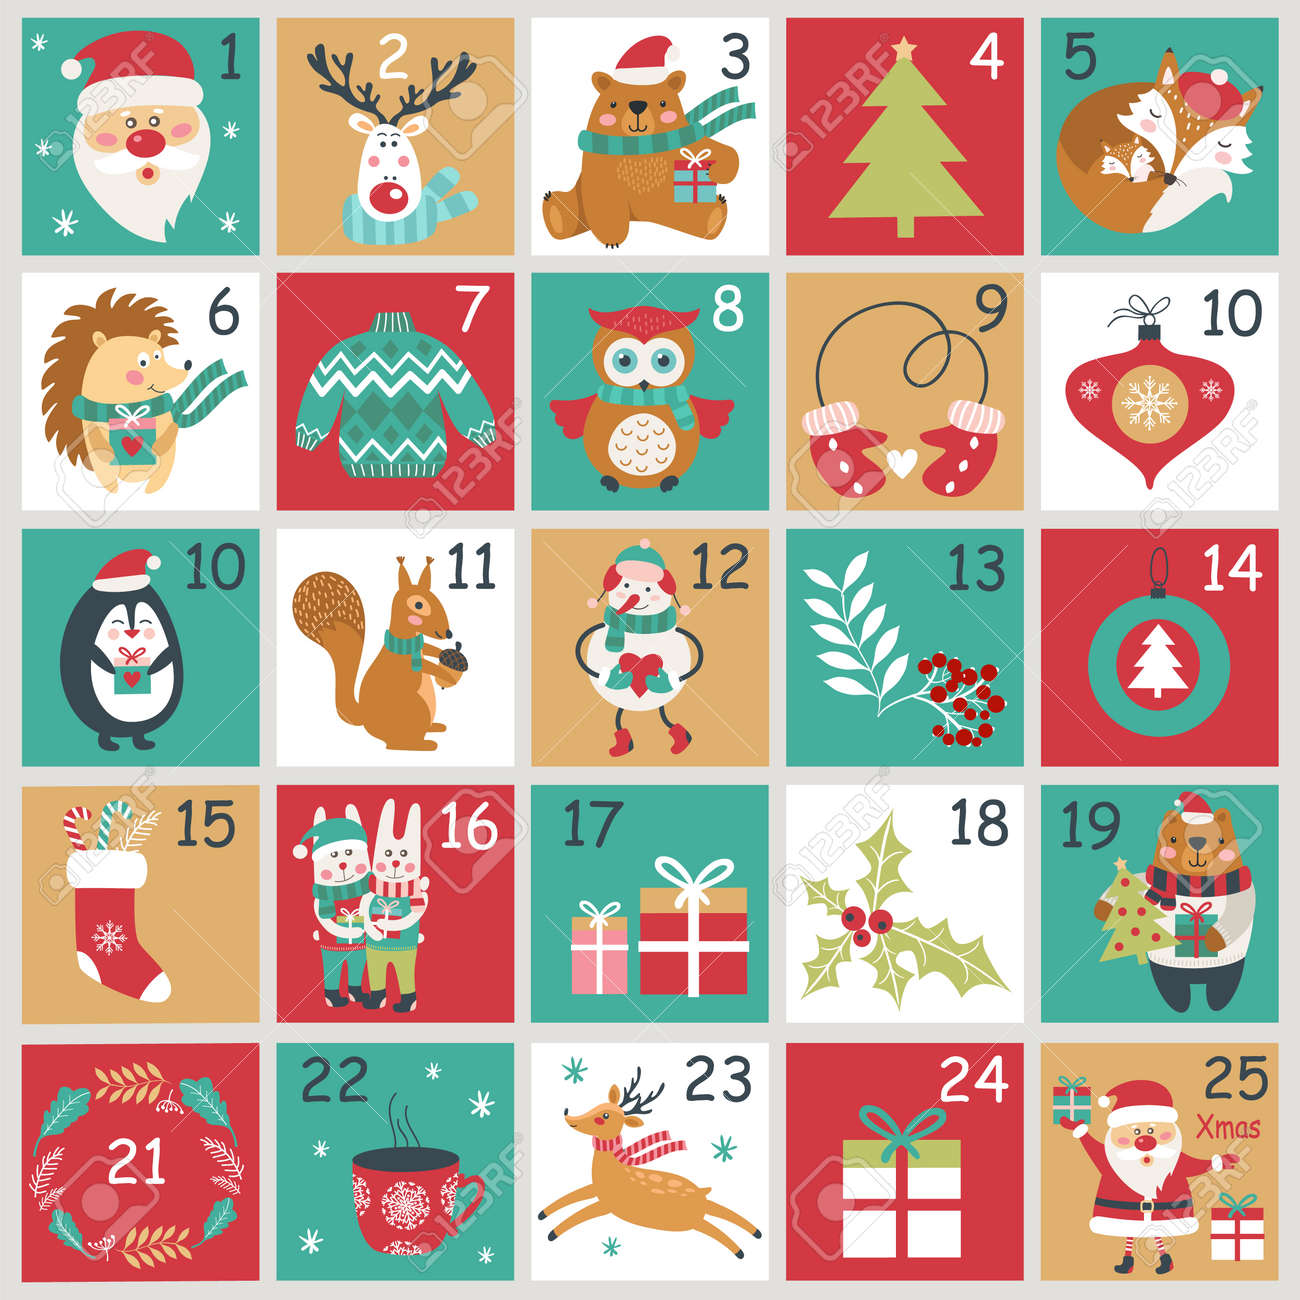 Christmas Advent Calendar.Christmas Advent Calendar With Hand Drawn Elements Xmas Poster